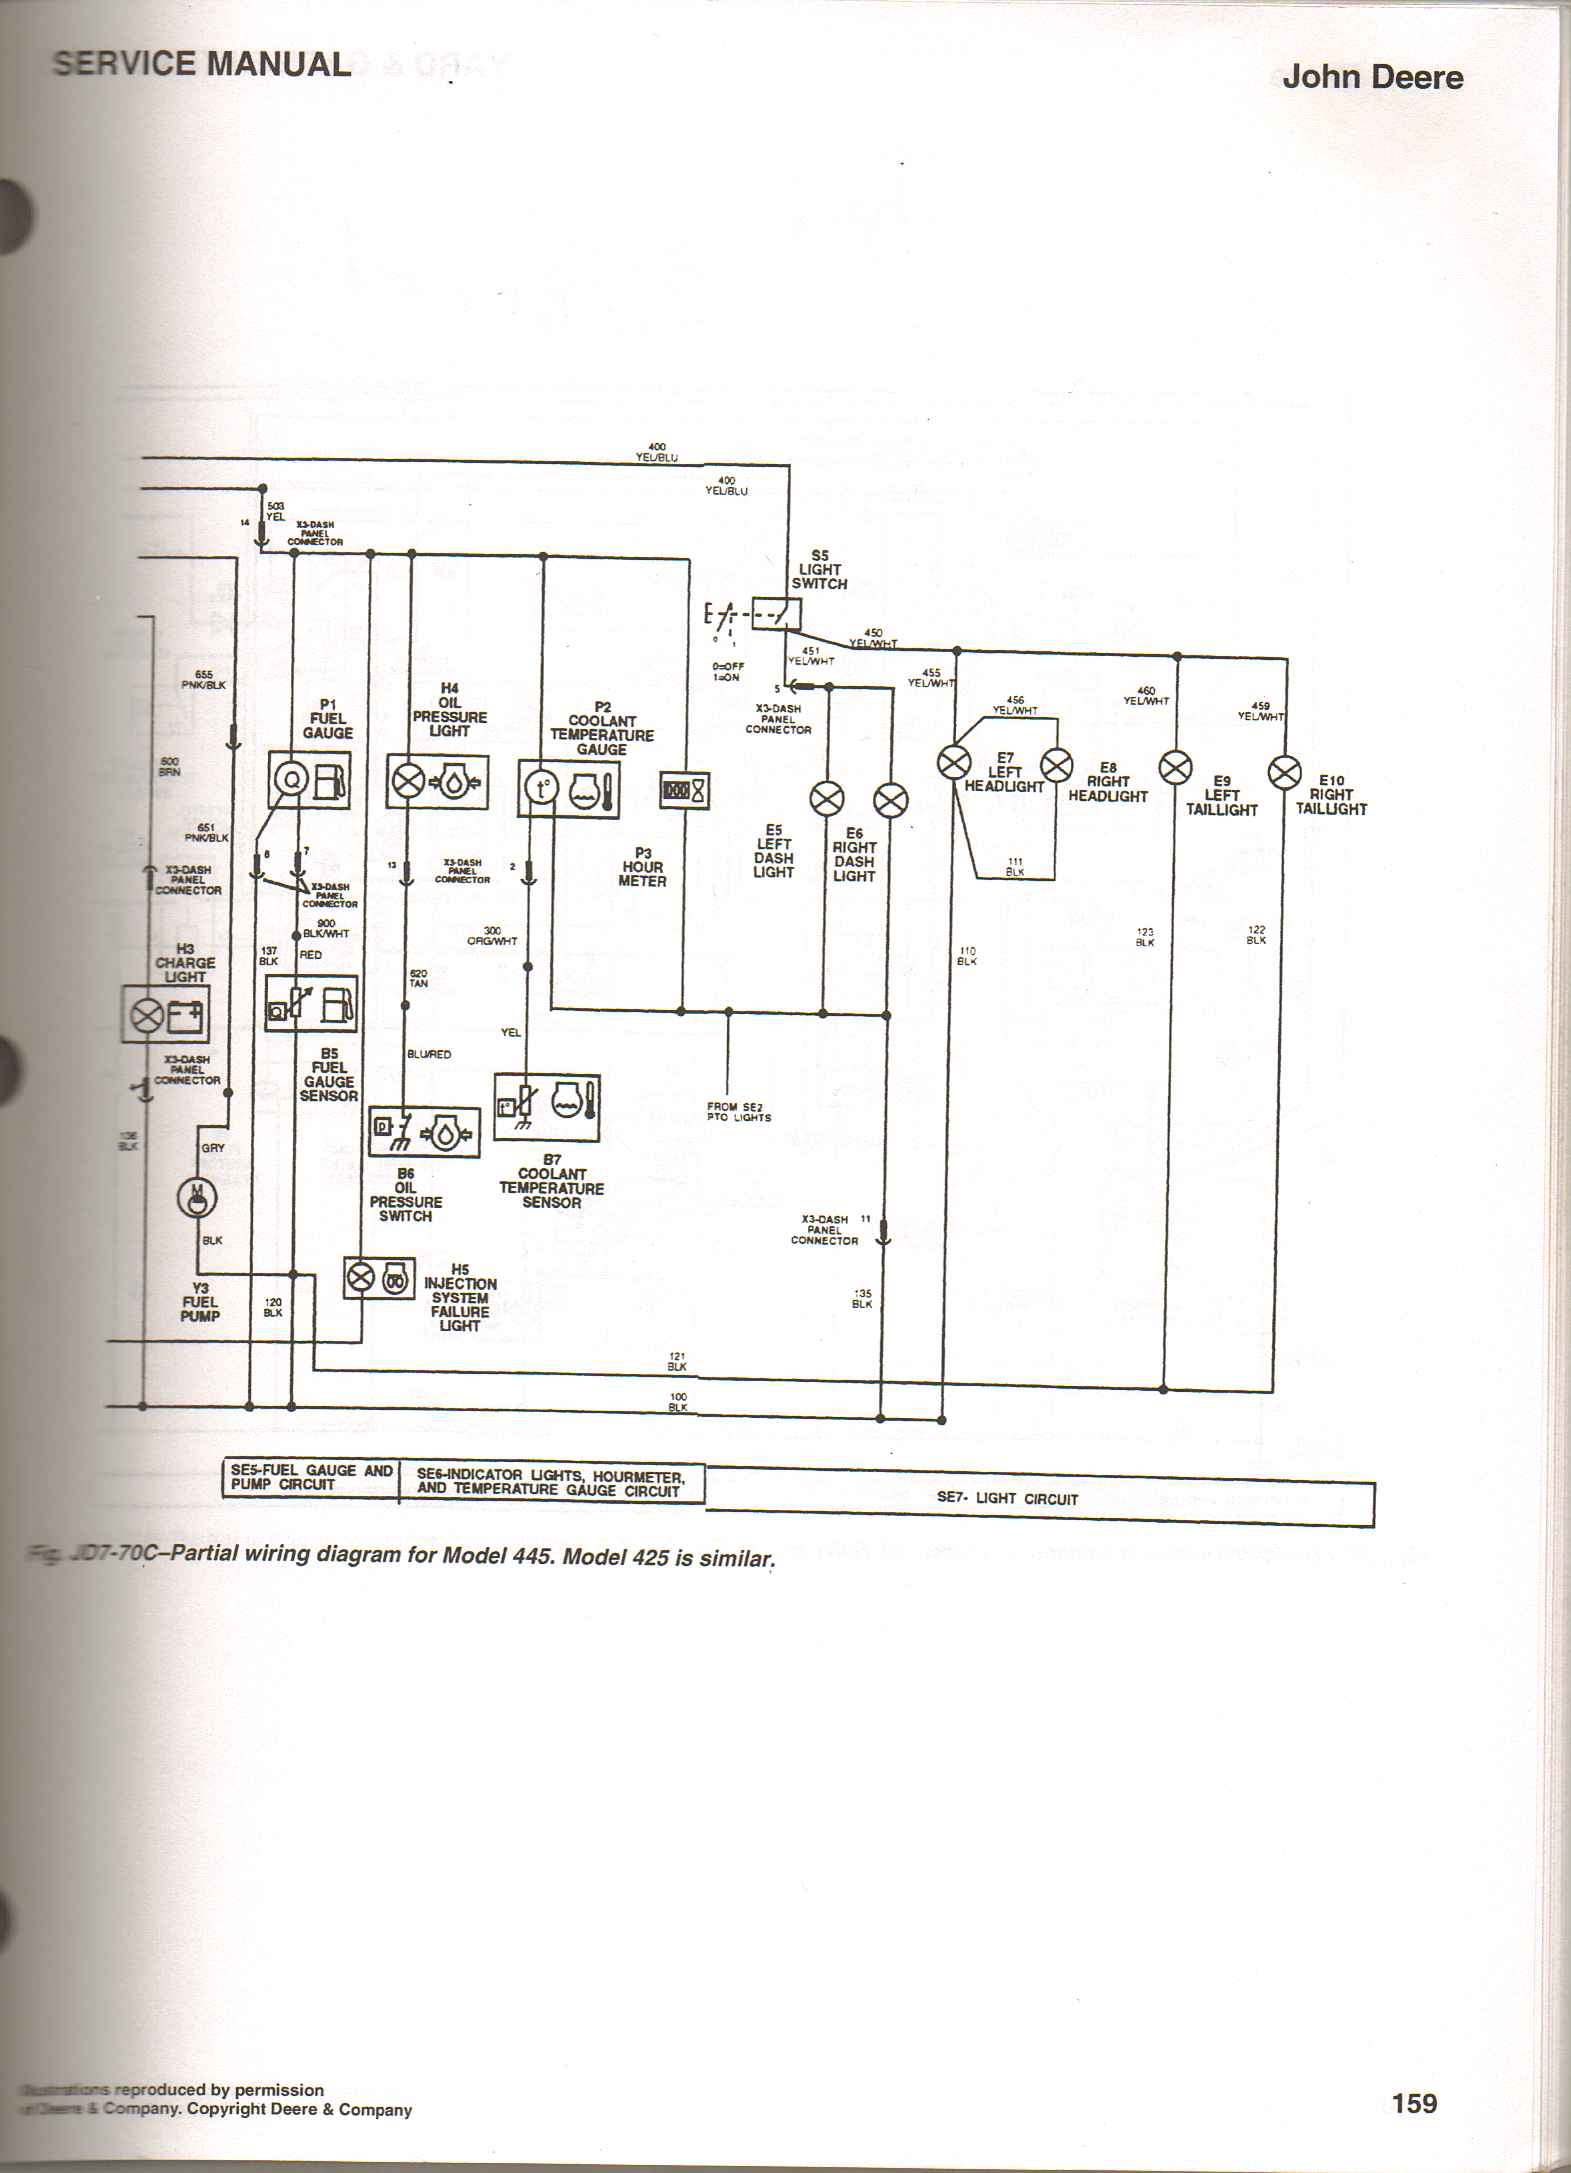 Magnificent John Deere 425 Tractor Wiring Diagrams Basic Electronics Wiring Wiring Cloud Overrenstrafr09Org